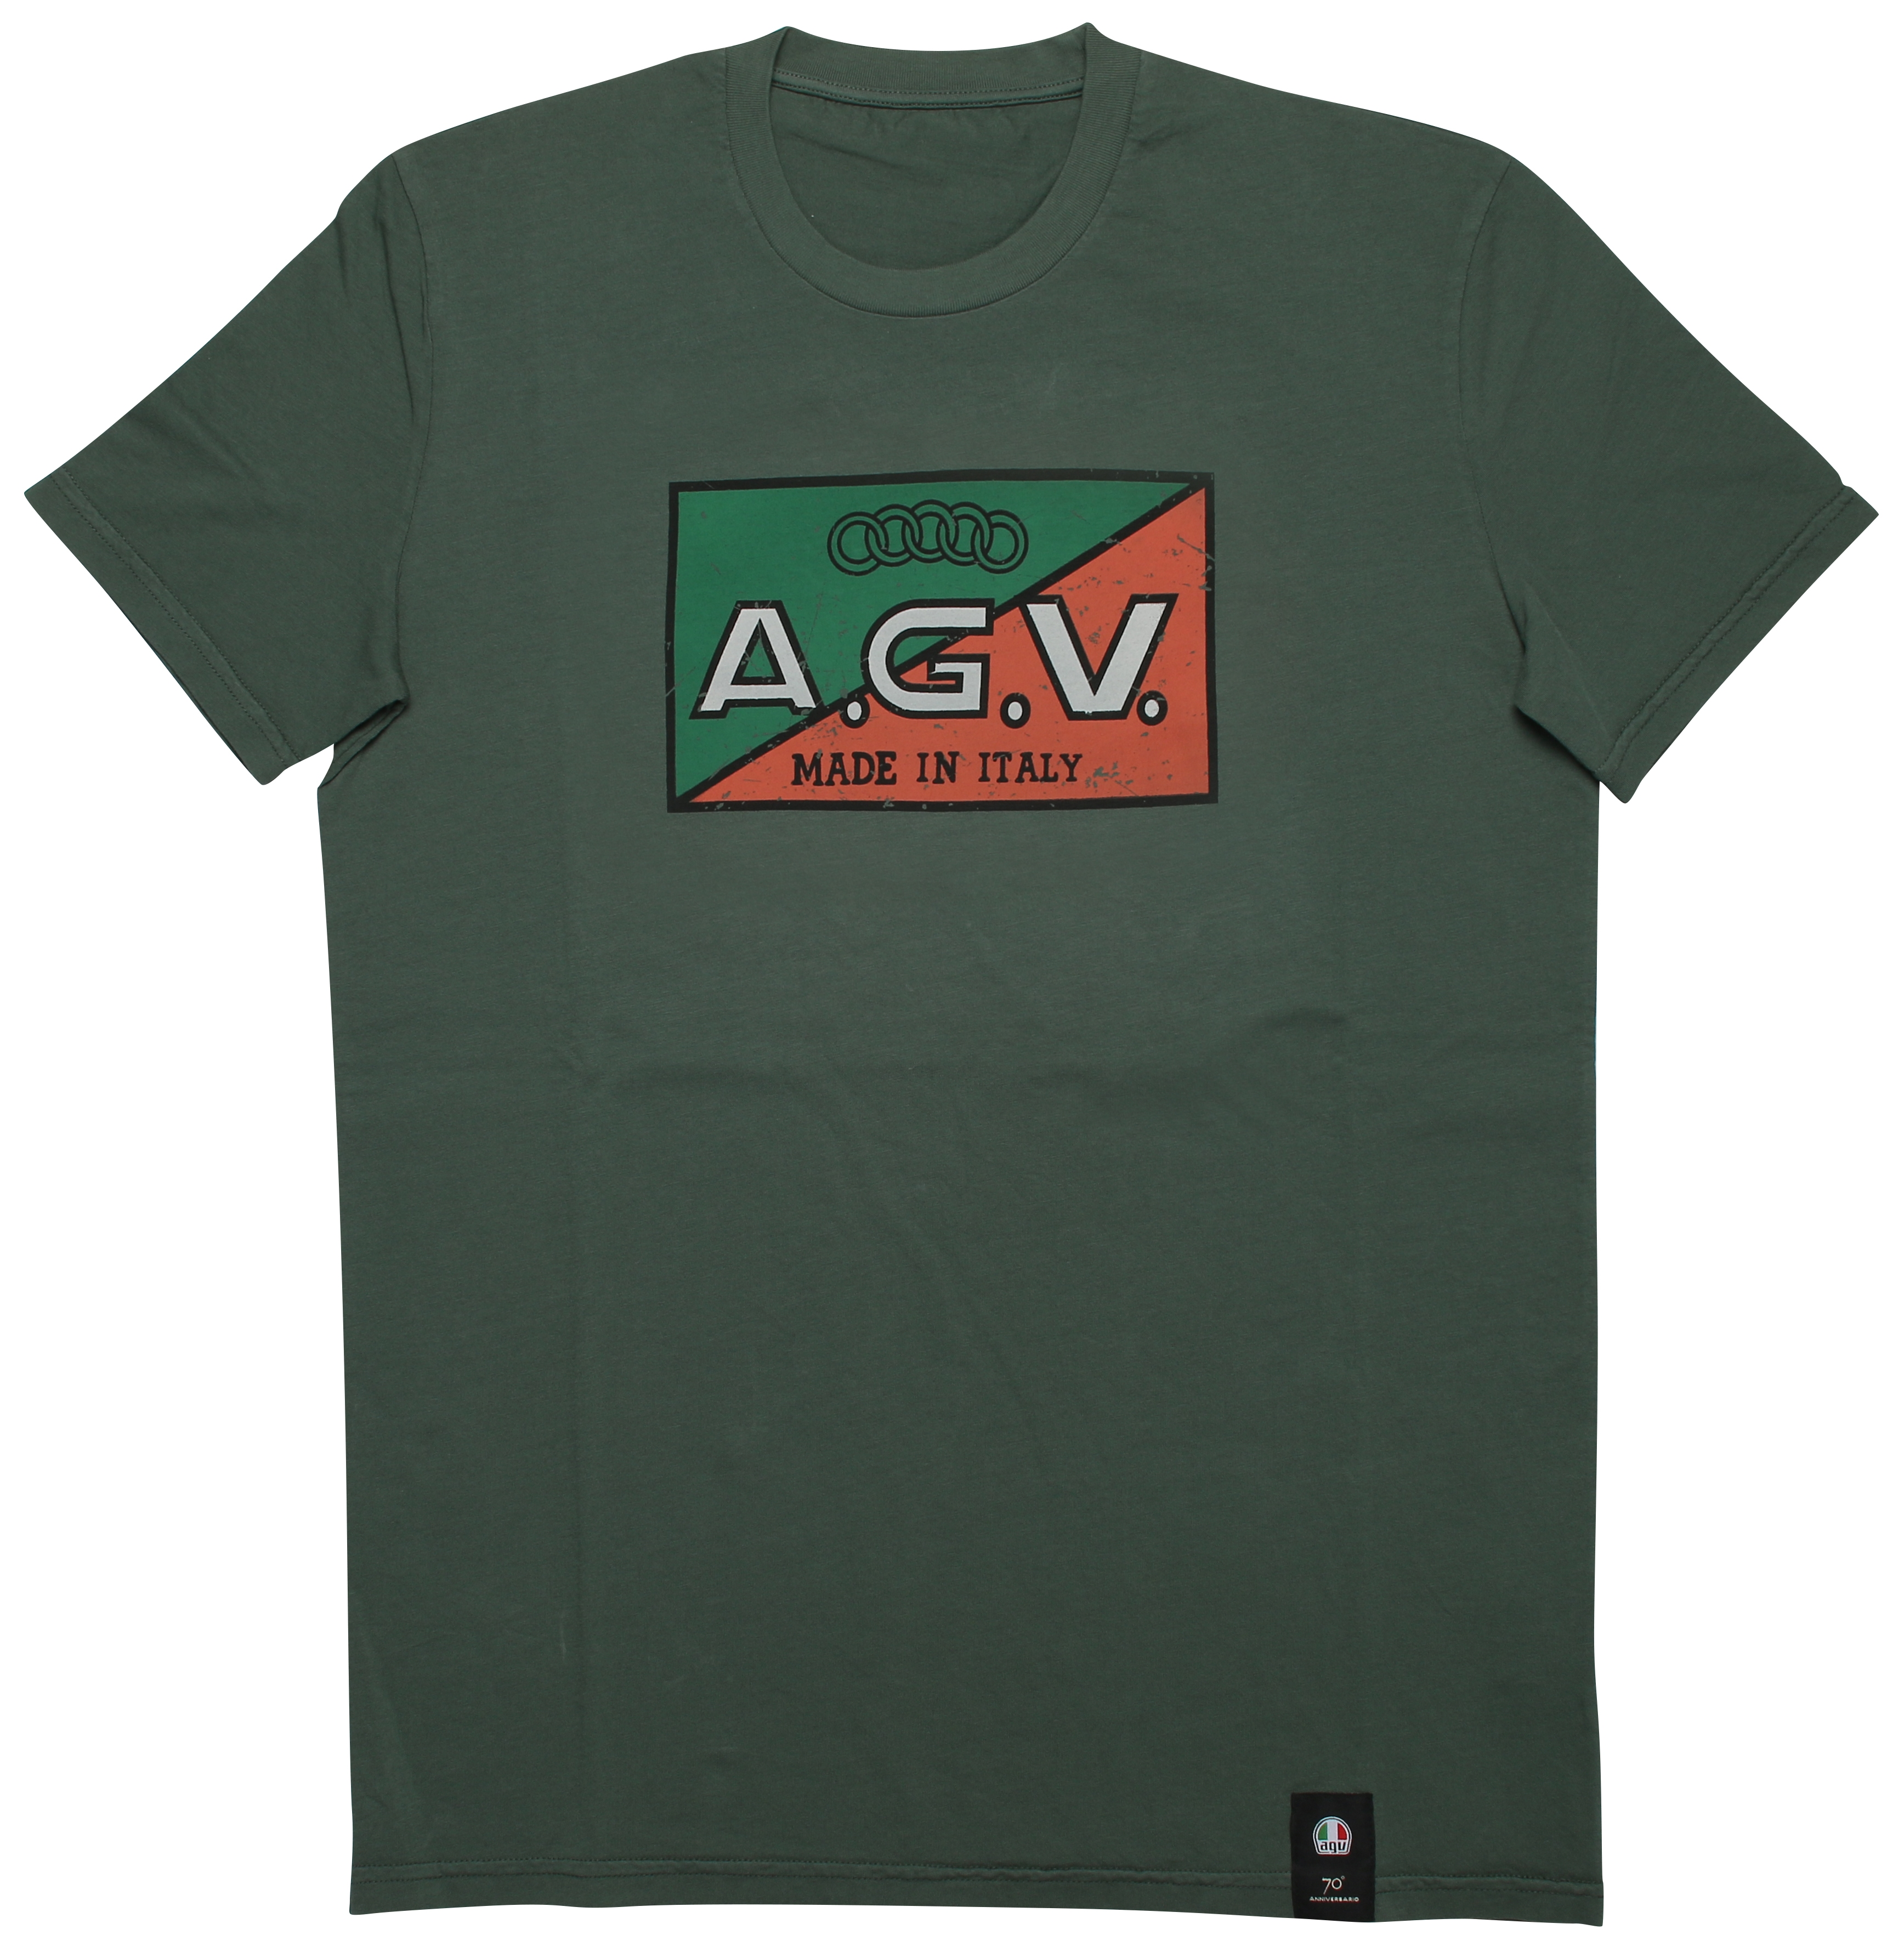 dainese agv t shirt cycle gear. Black Bedroom Furniture Sets. Home Design Ideas